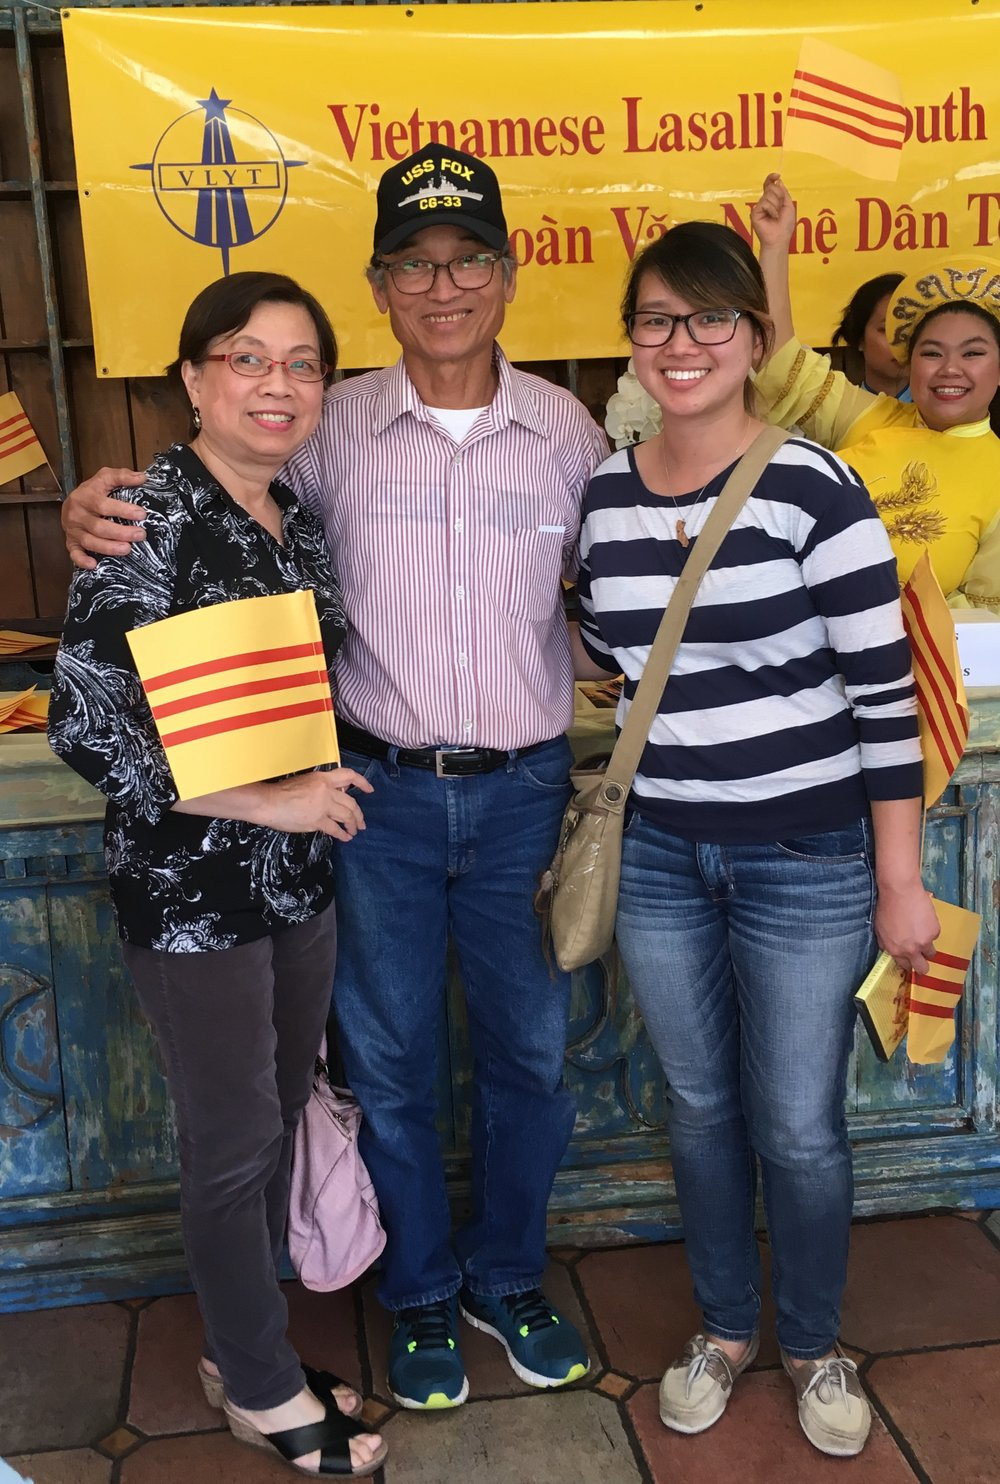 Catherine with her parents celebrating the history of South Viet Nam